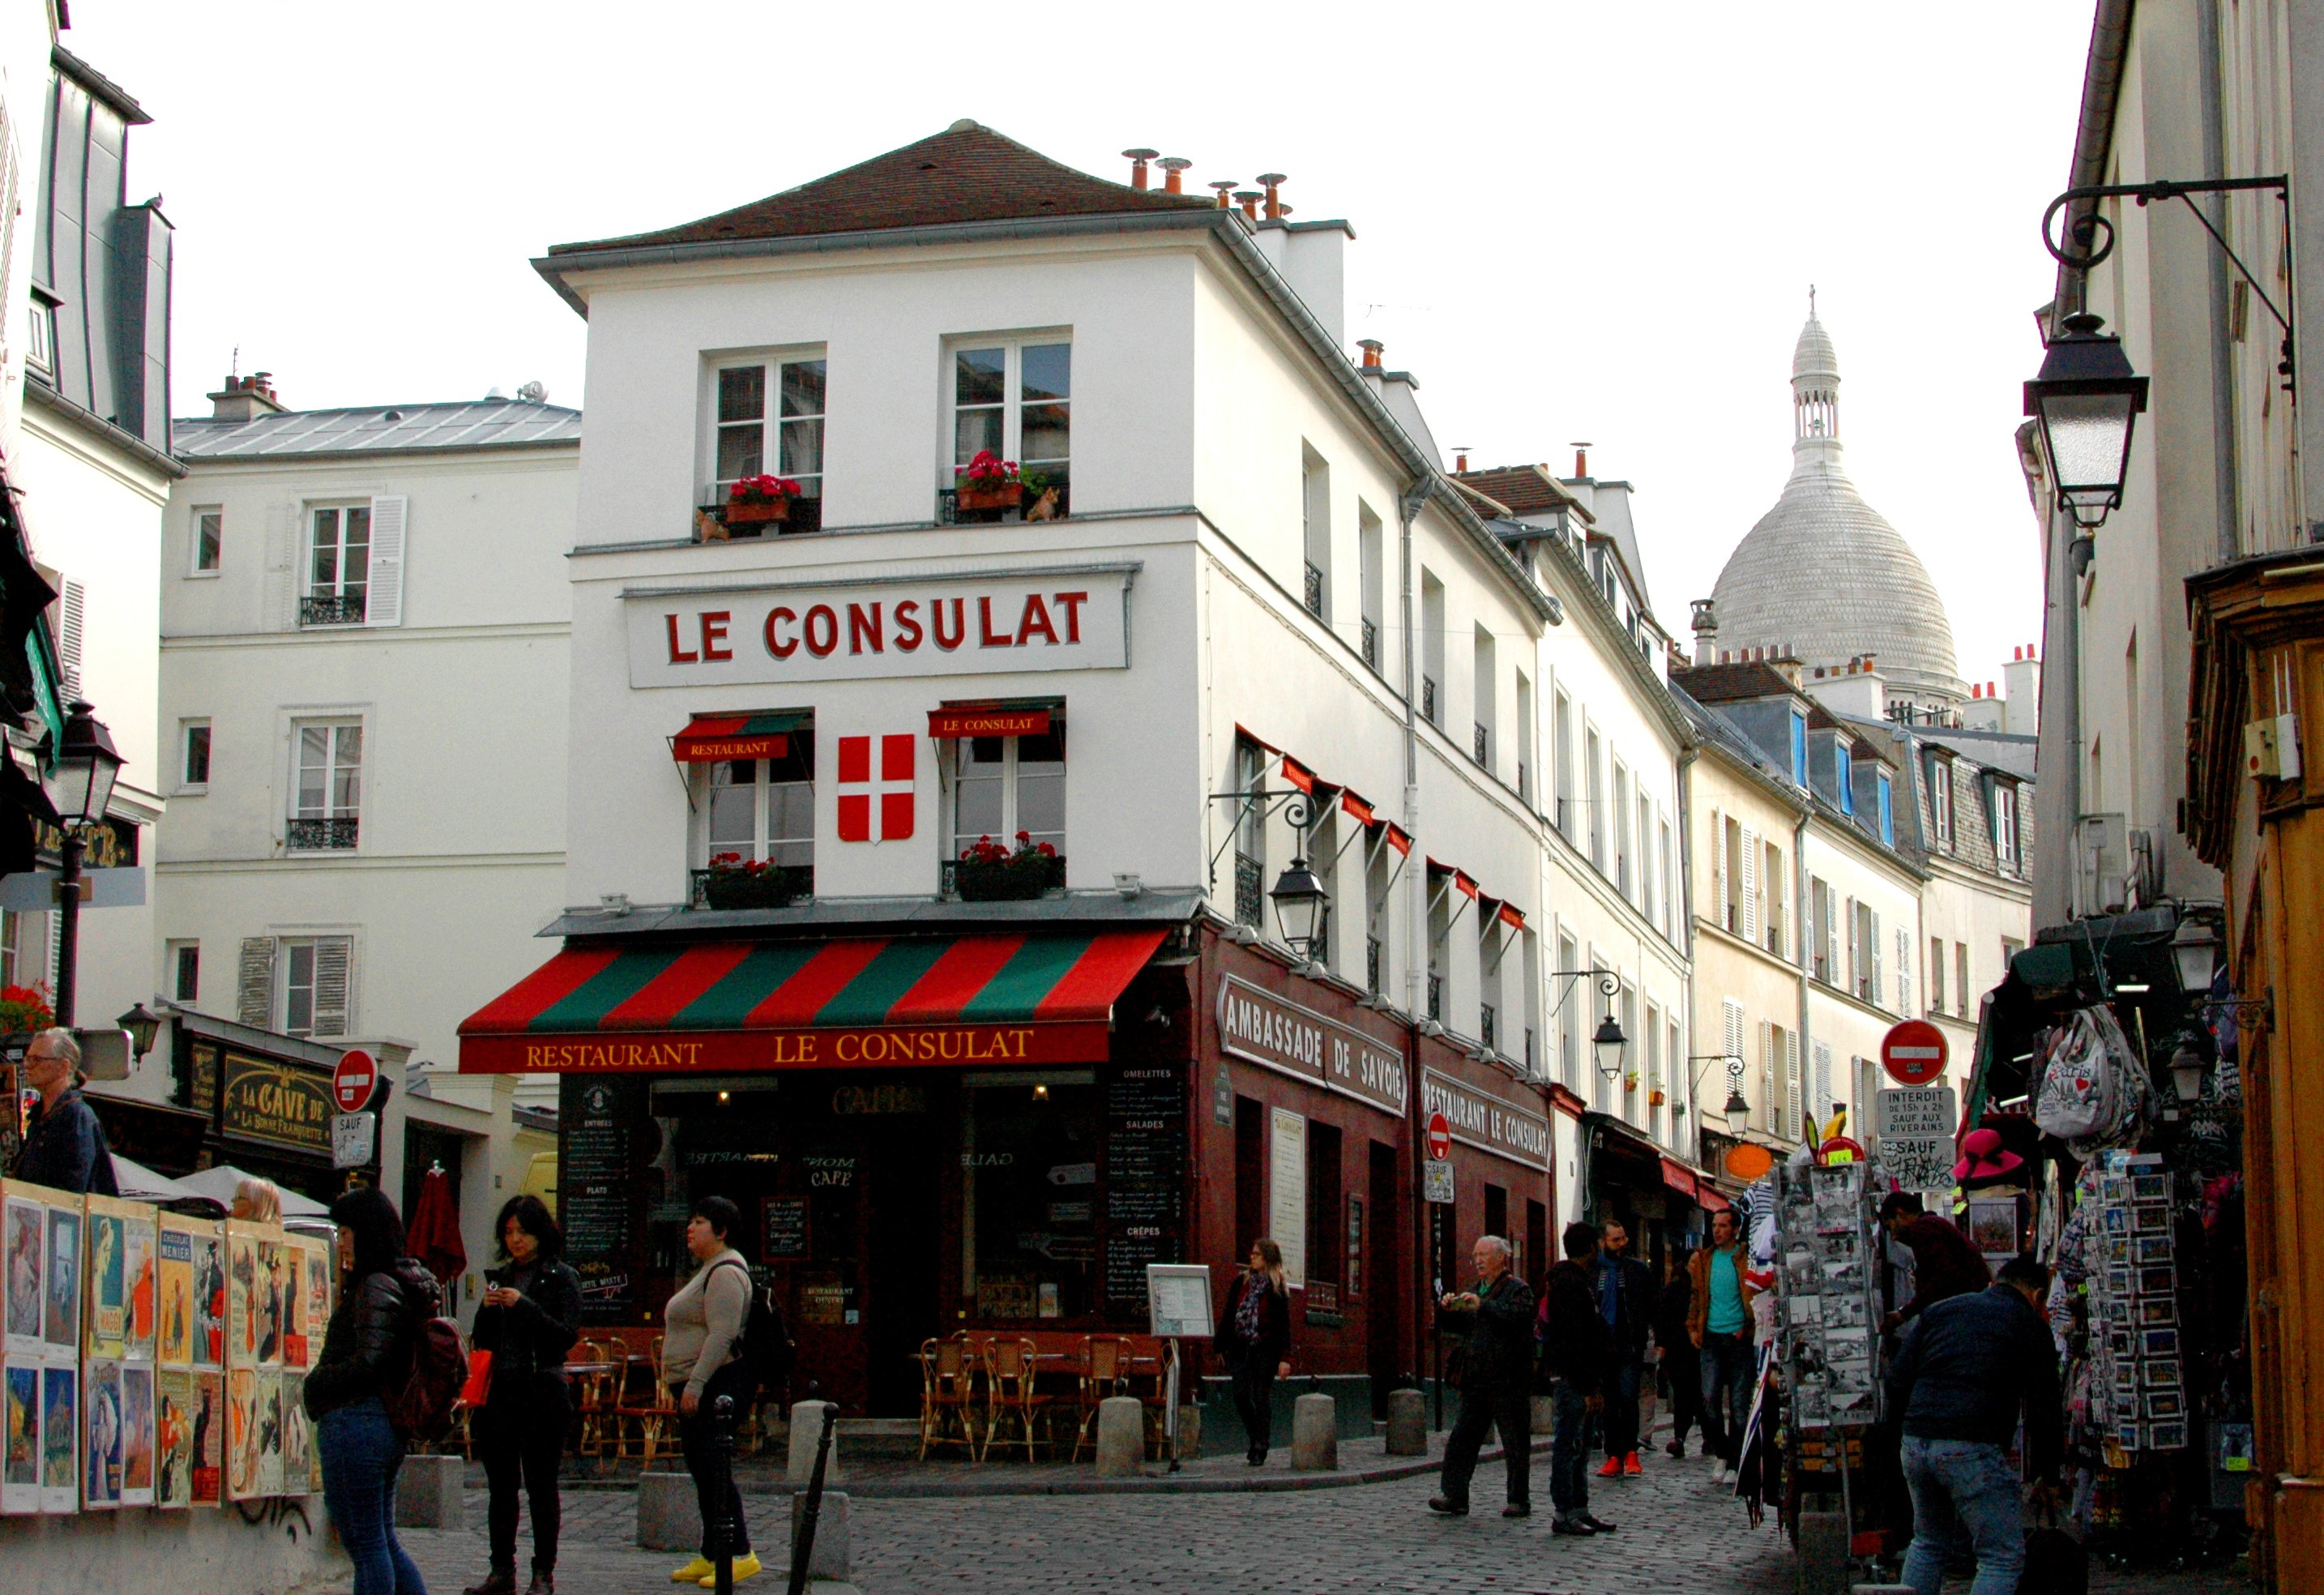 16 Cool Things to Do in Paris - Le Consulat, Montmartre, Paris